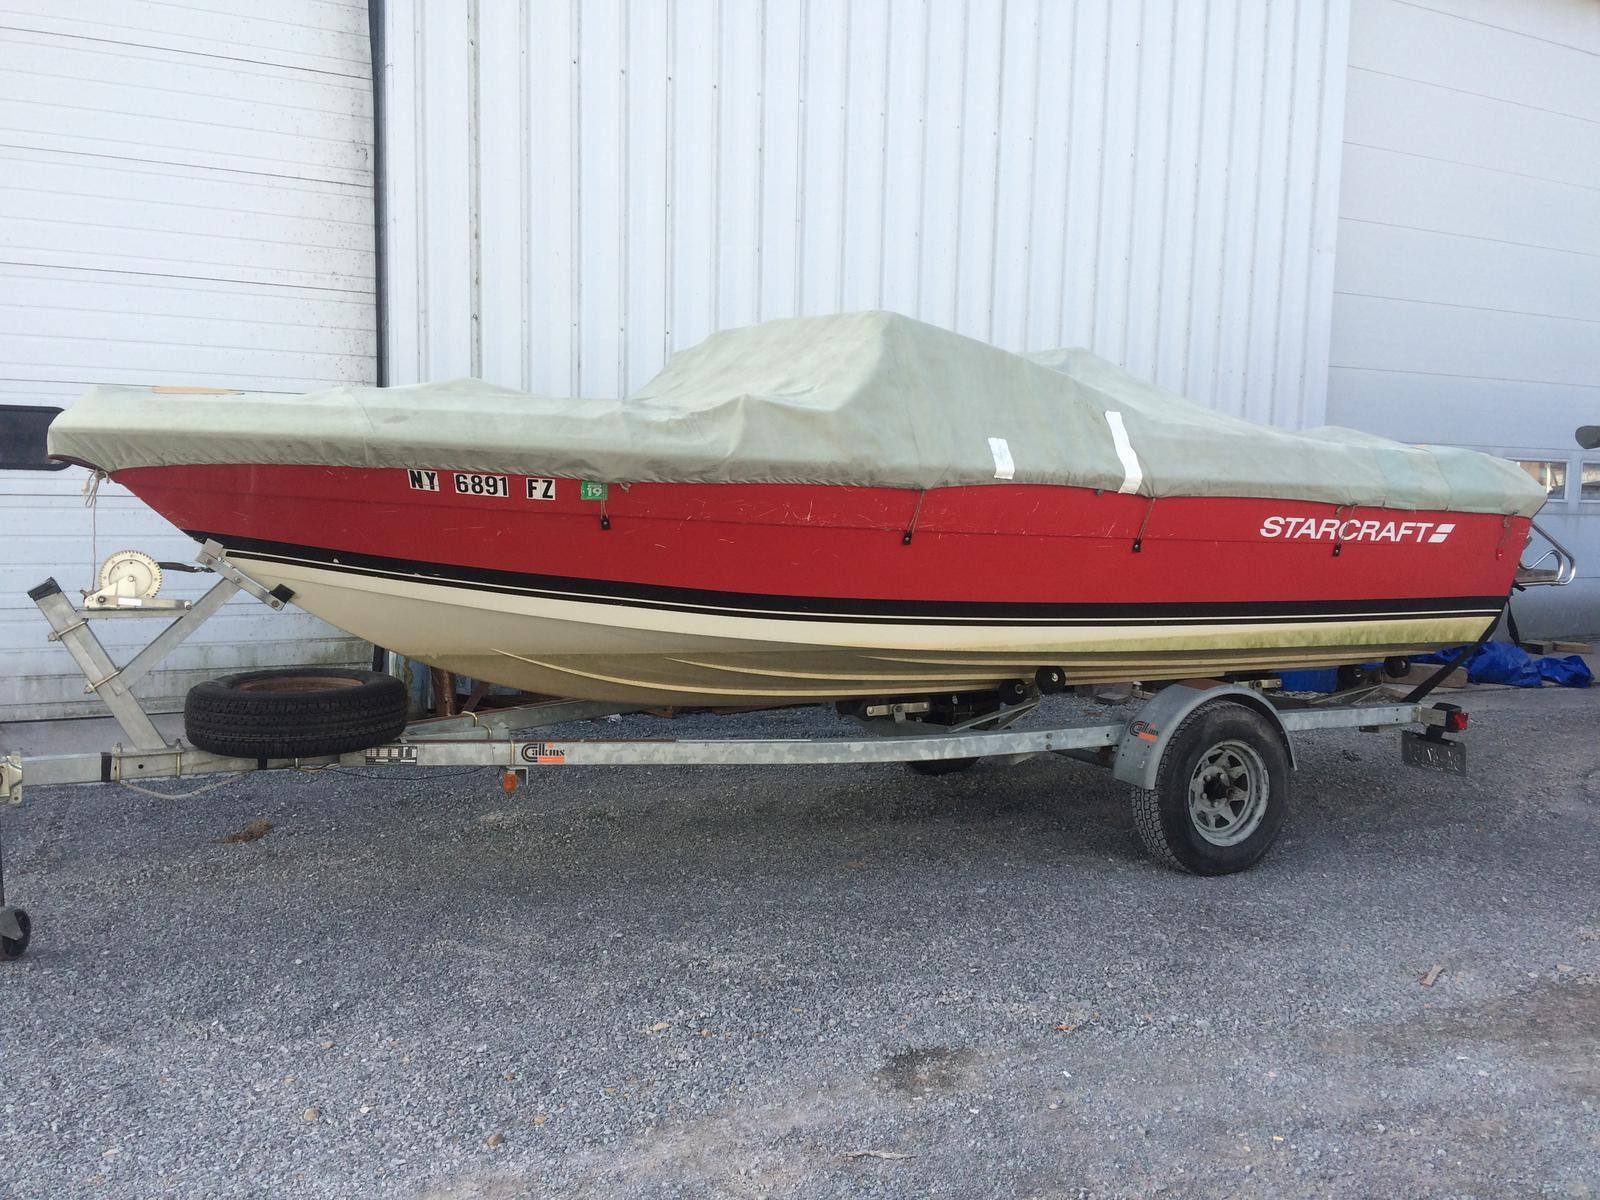 USED 1987 Starcraft 1900 Medalist - Hutchinson's Boat Works